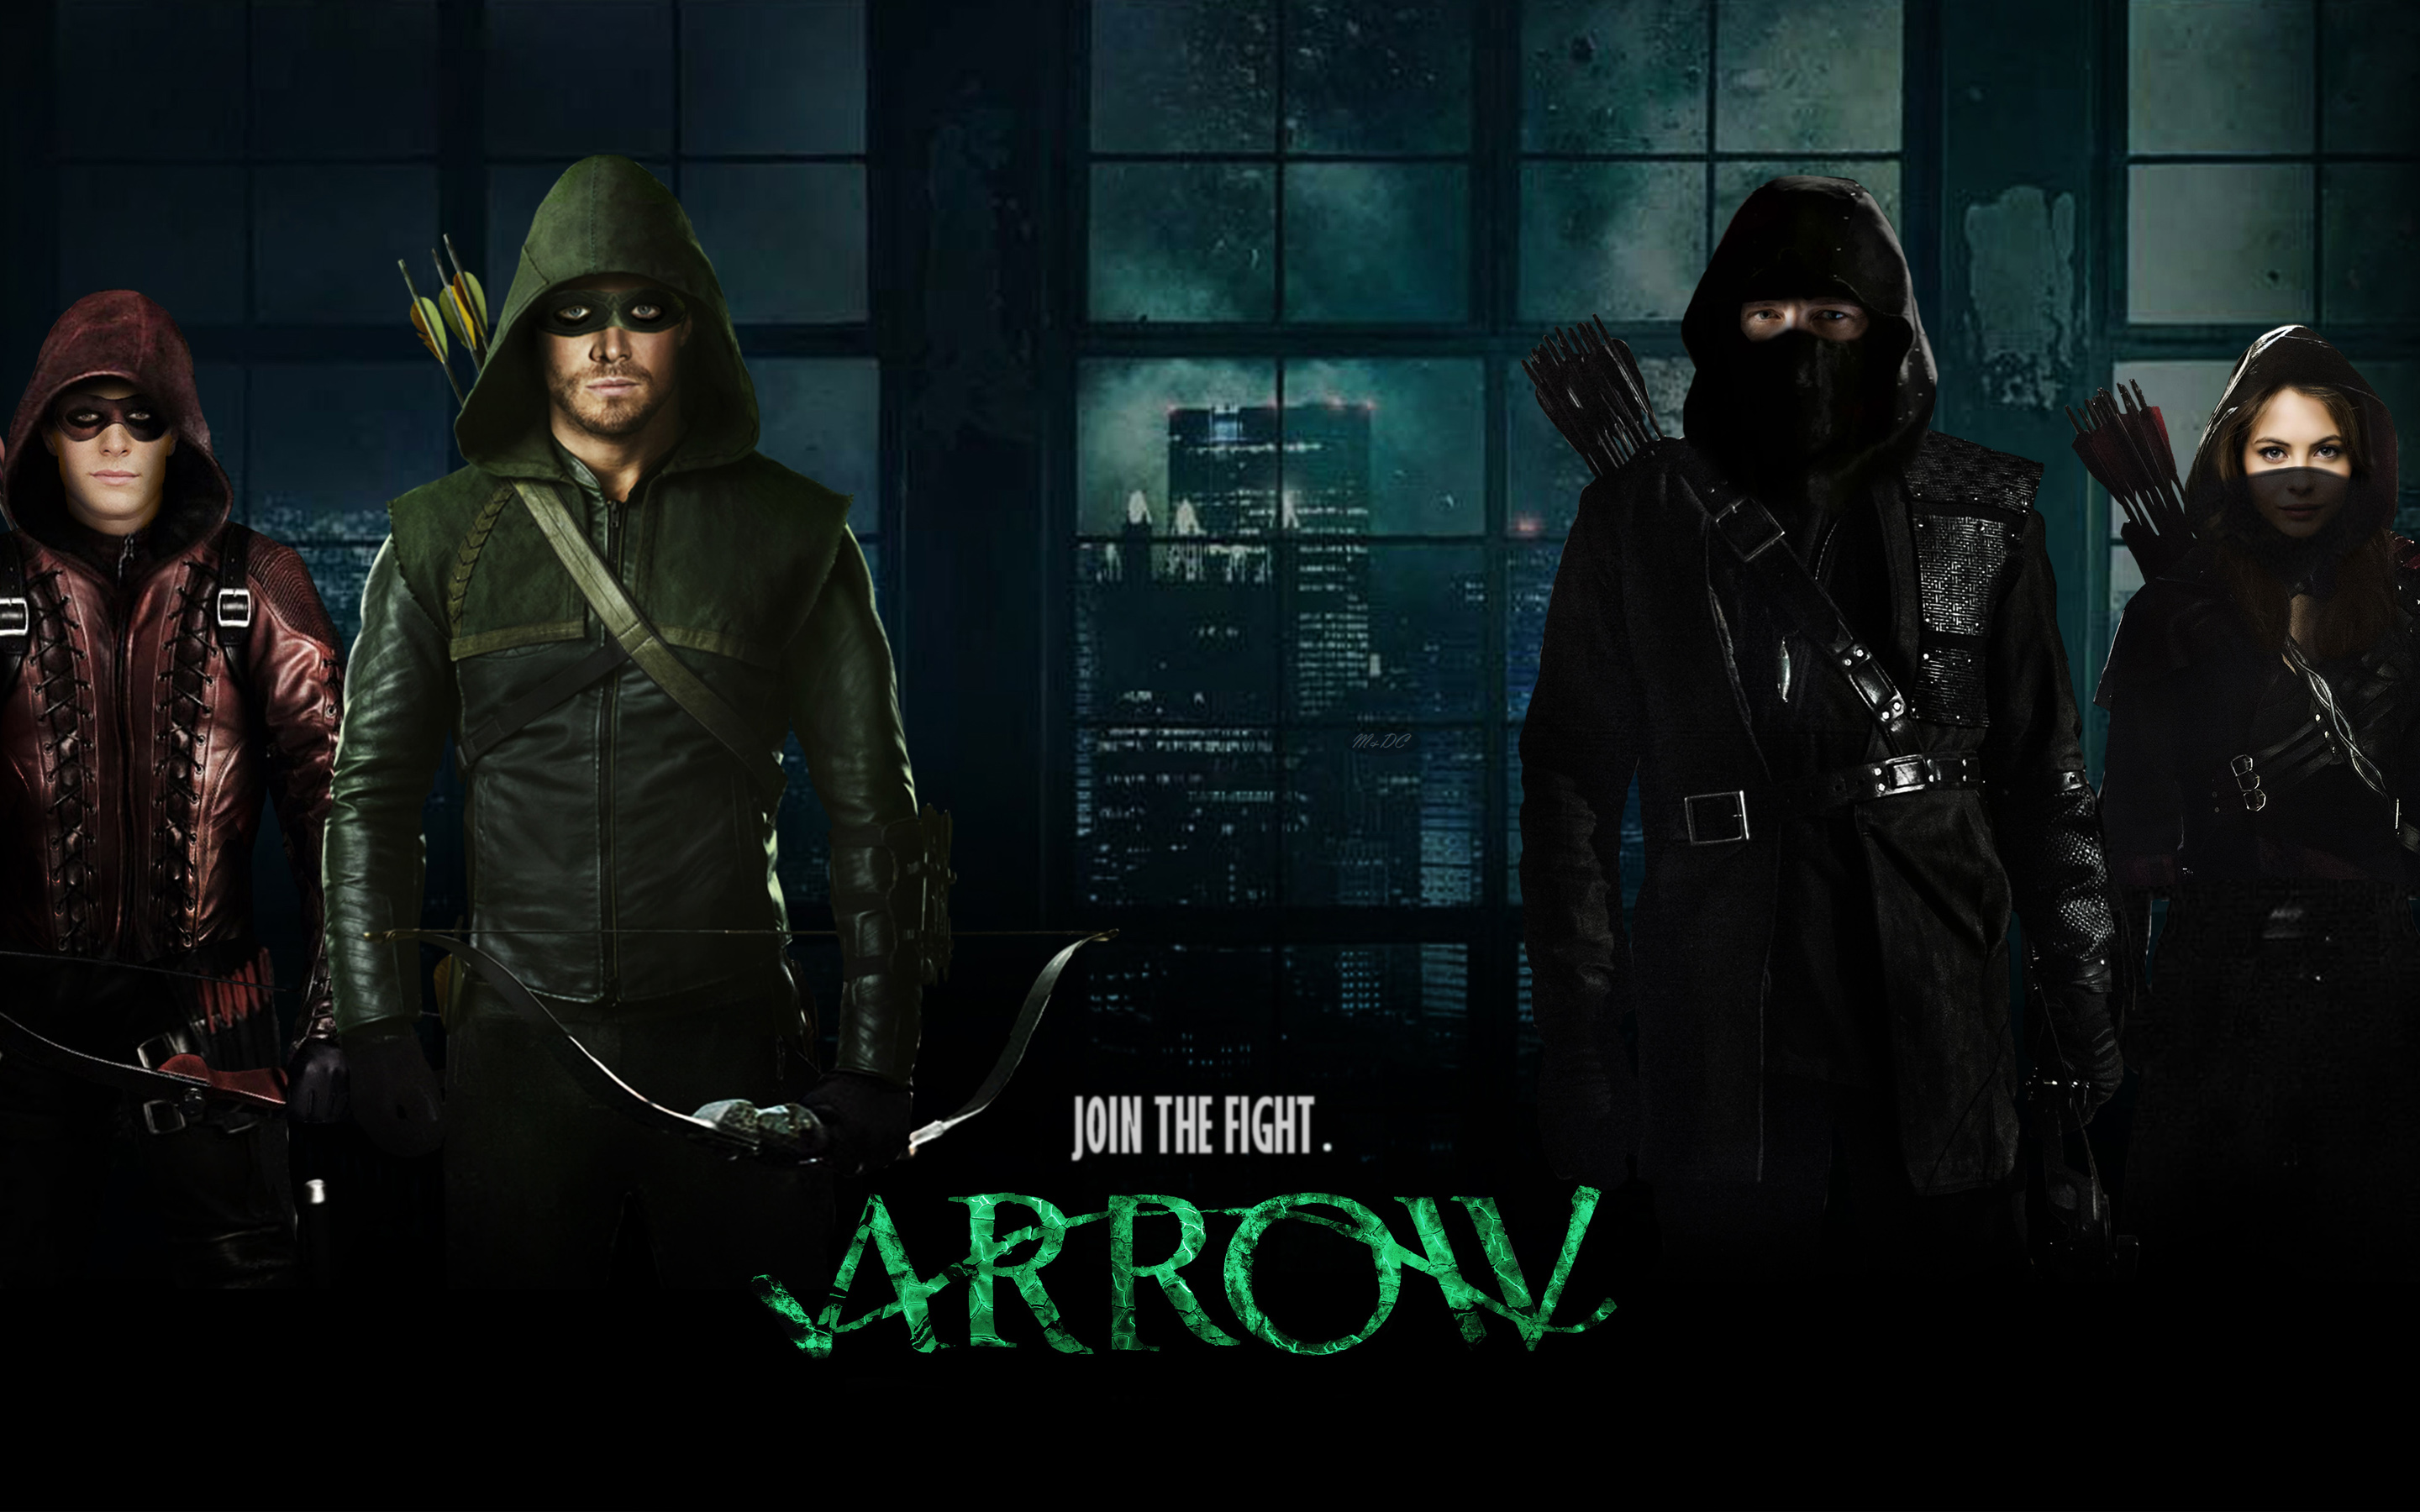 Arrow Season 3 2014